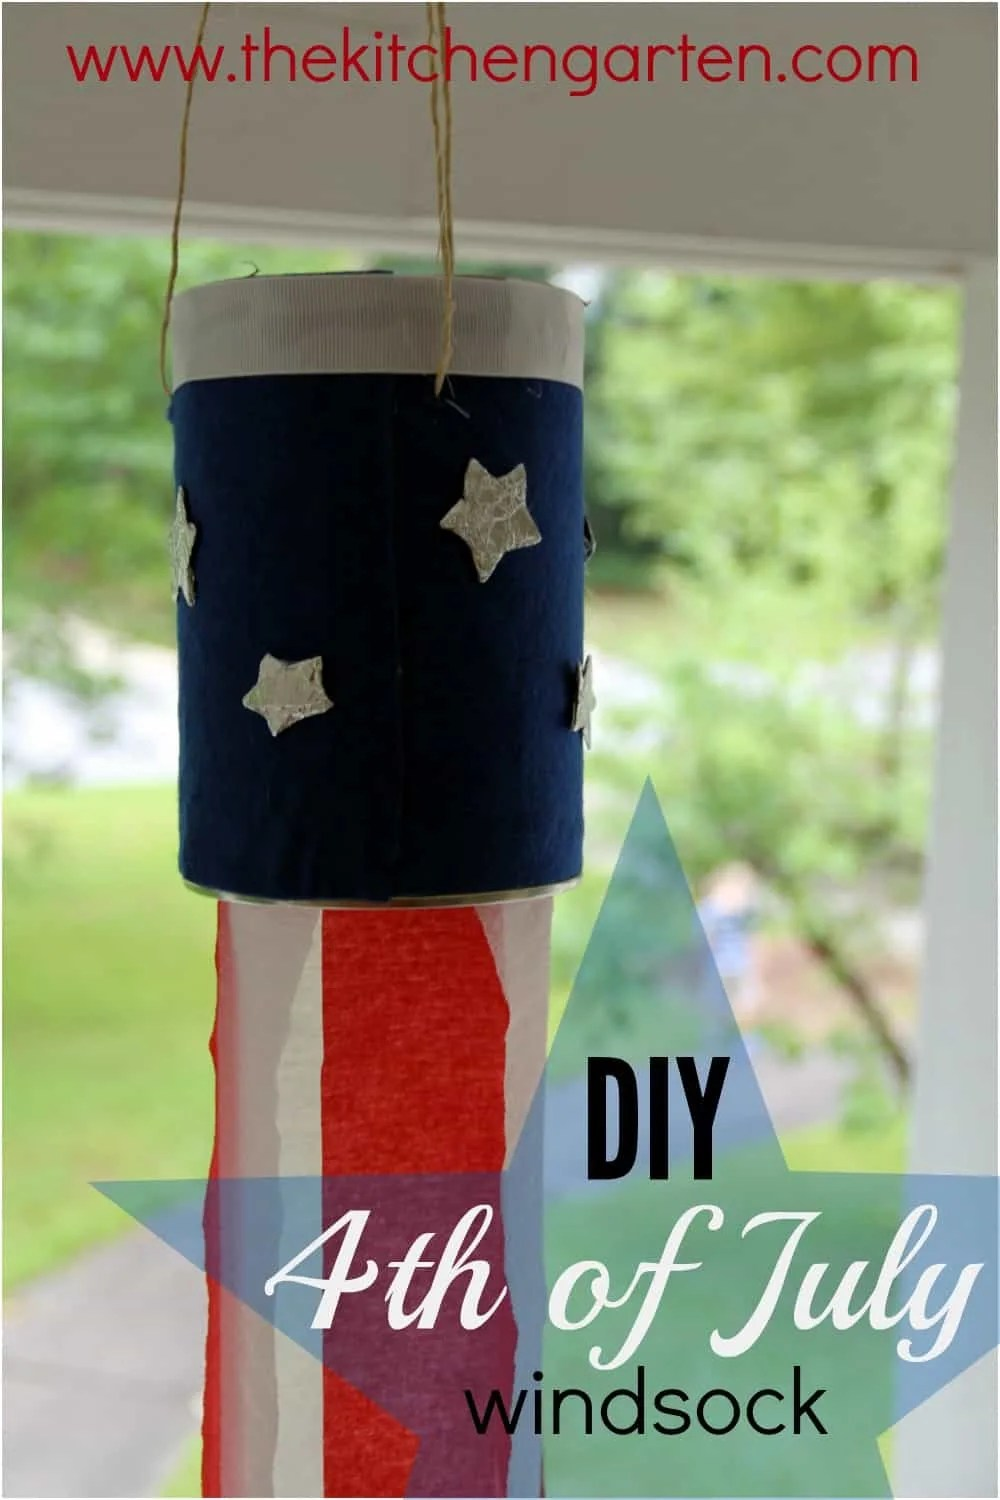 Create this DIY 4th of July windsock with recycled materials! It's perfect for kids and adults!